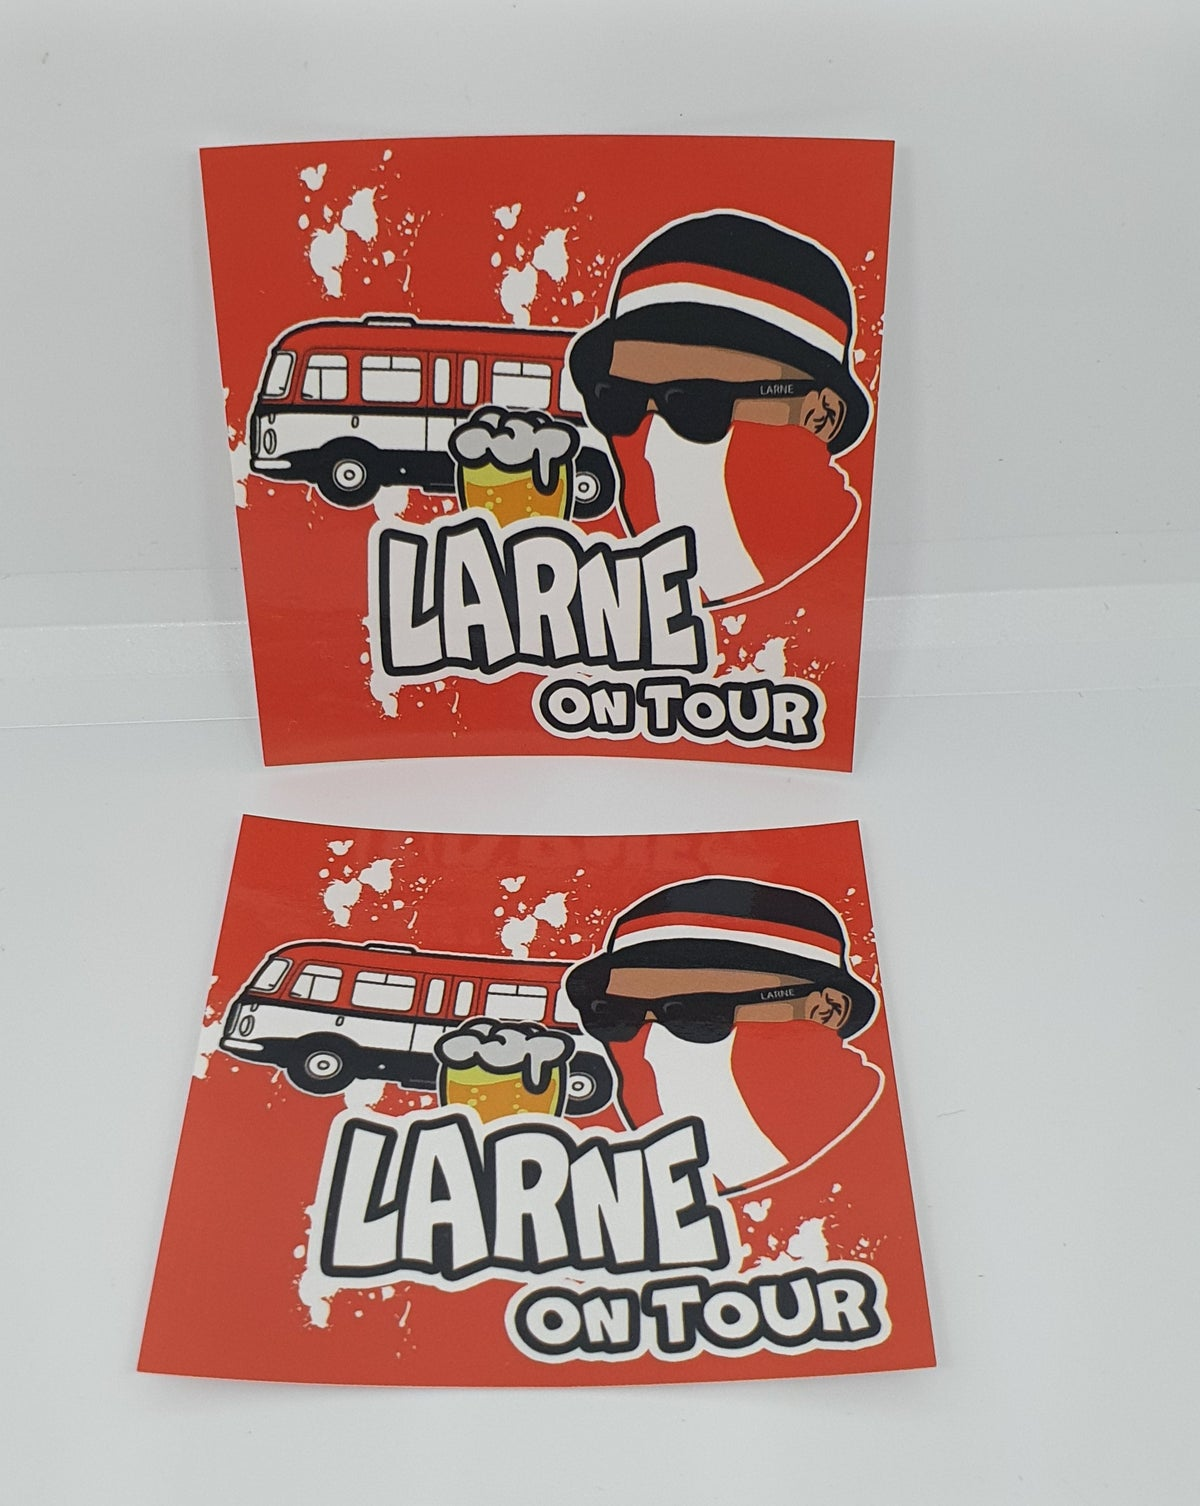 Pack of 25 7x7cm Larne On Tour Football/ultras Stickers.